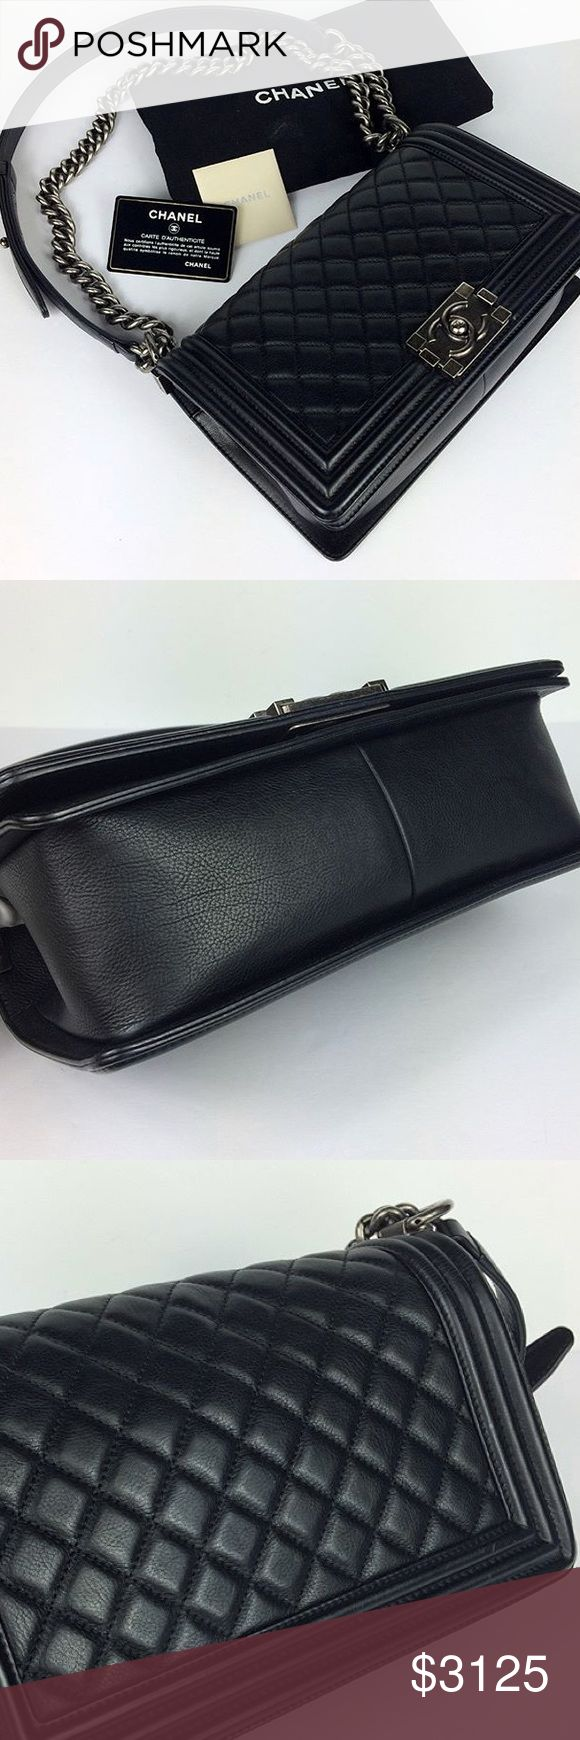 Chanel Boy Bag 100% Authentic Comes with everything Price firm here! Caviar Leather CHANEL Bags